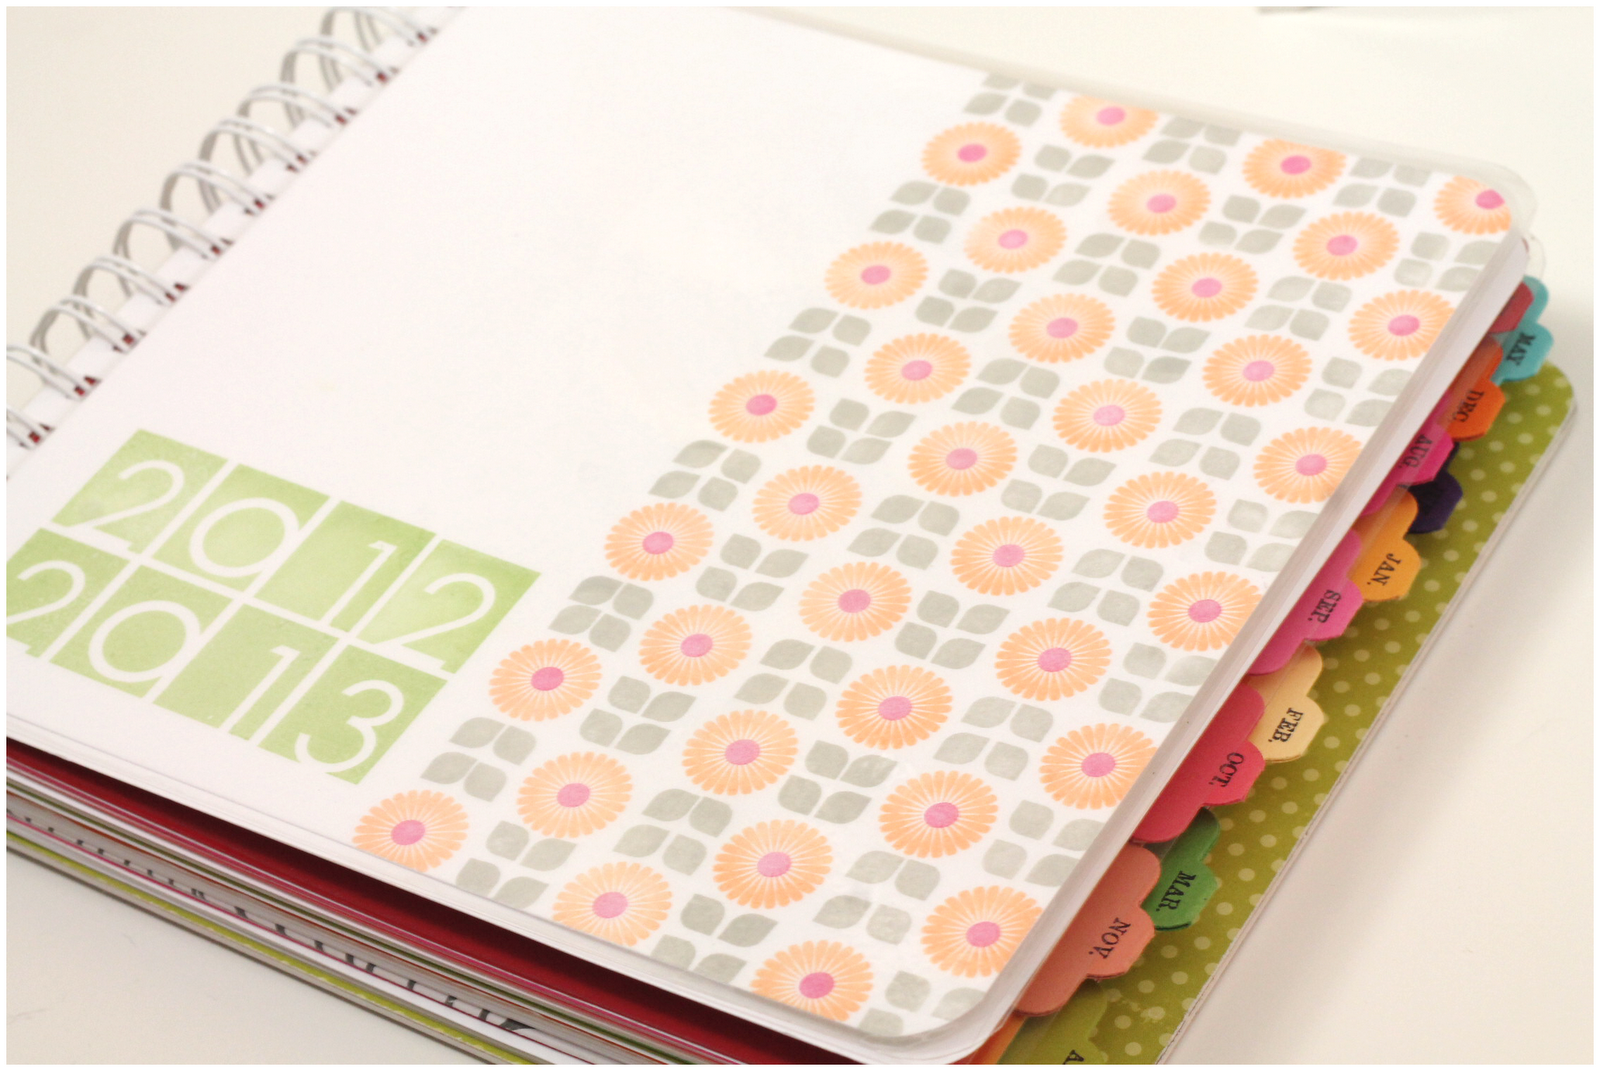 A Diy Planner Project Damask Love